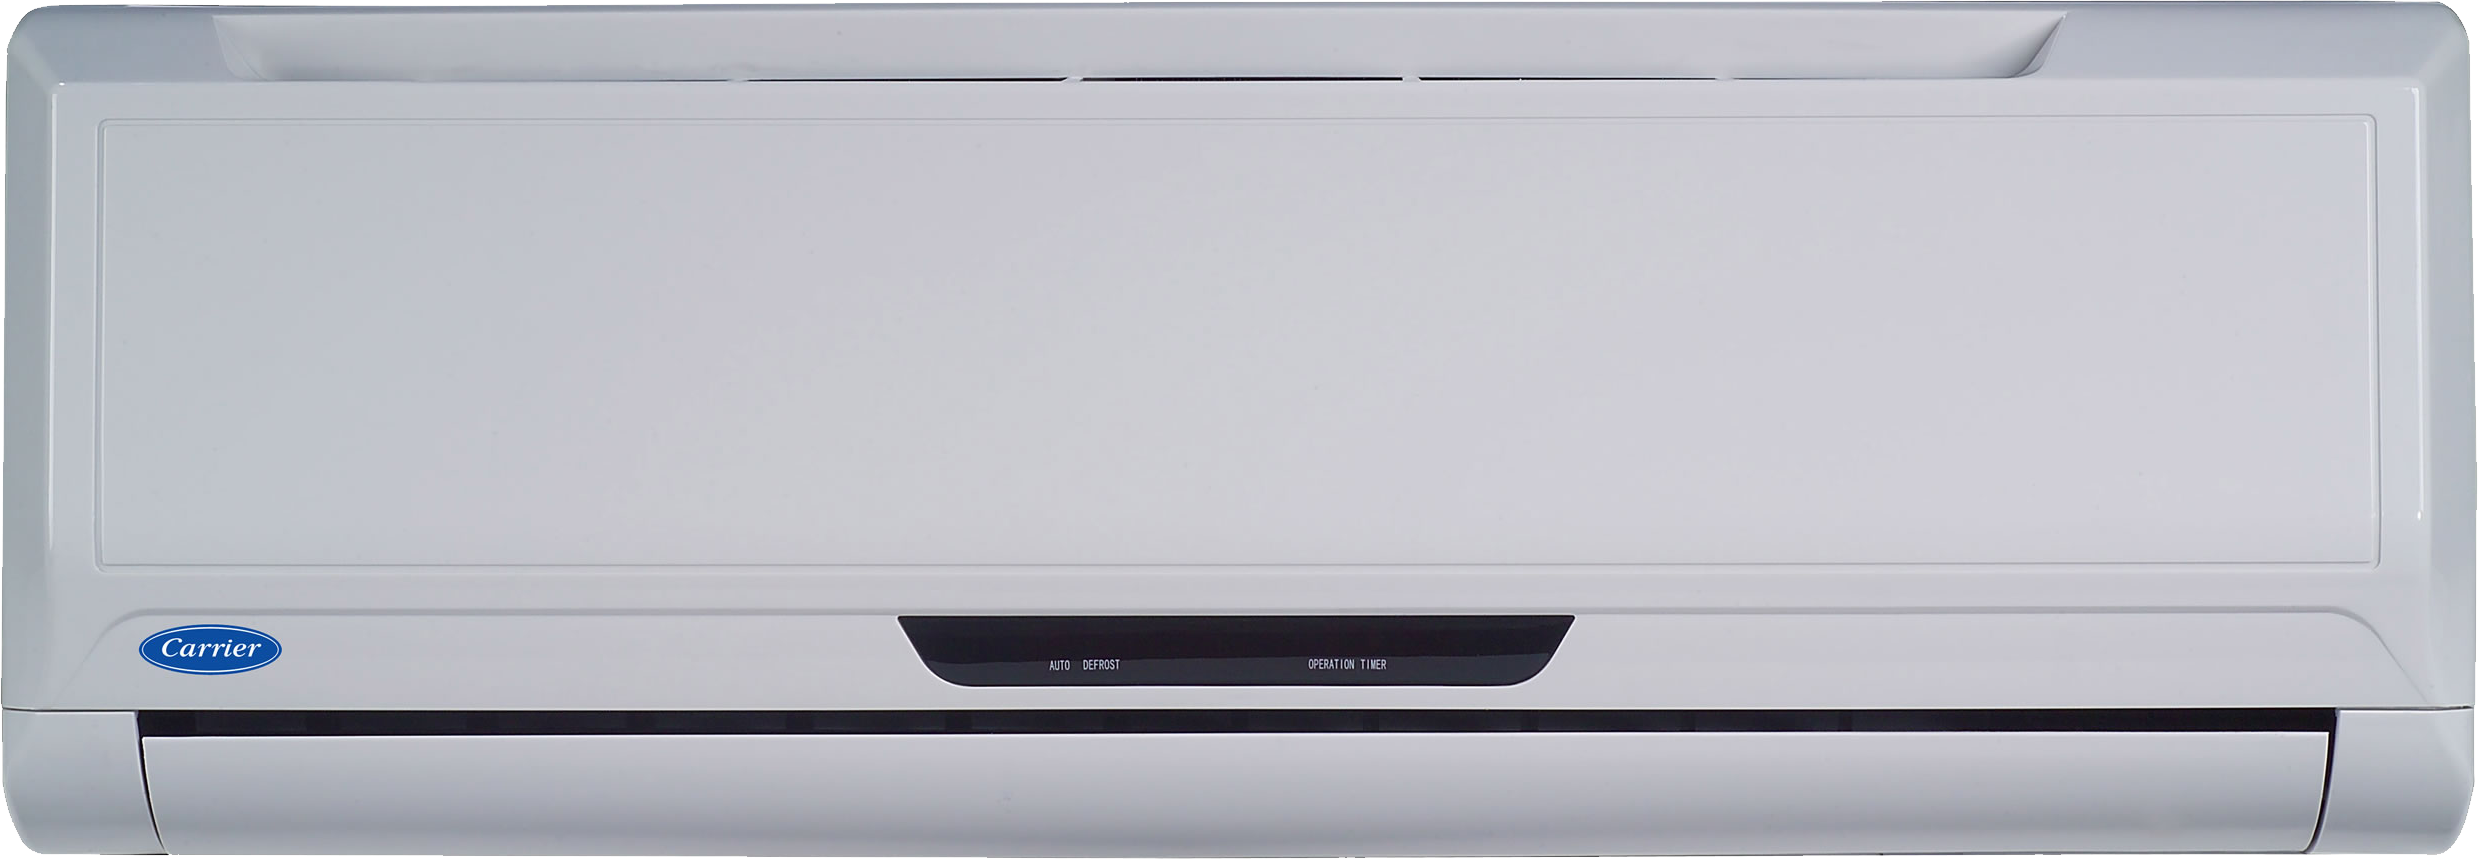 Air conditioner PNG images free download.